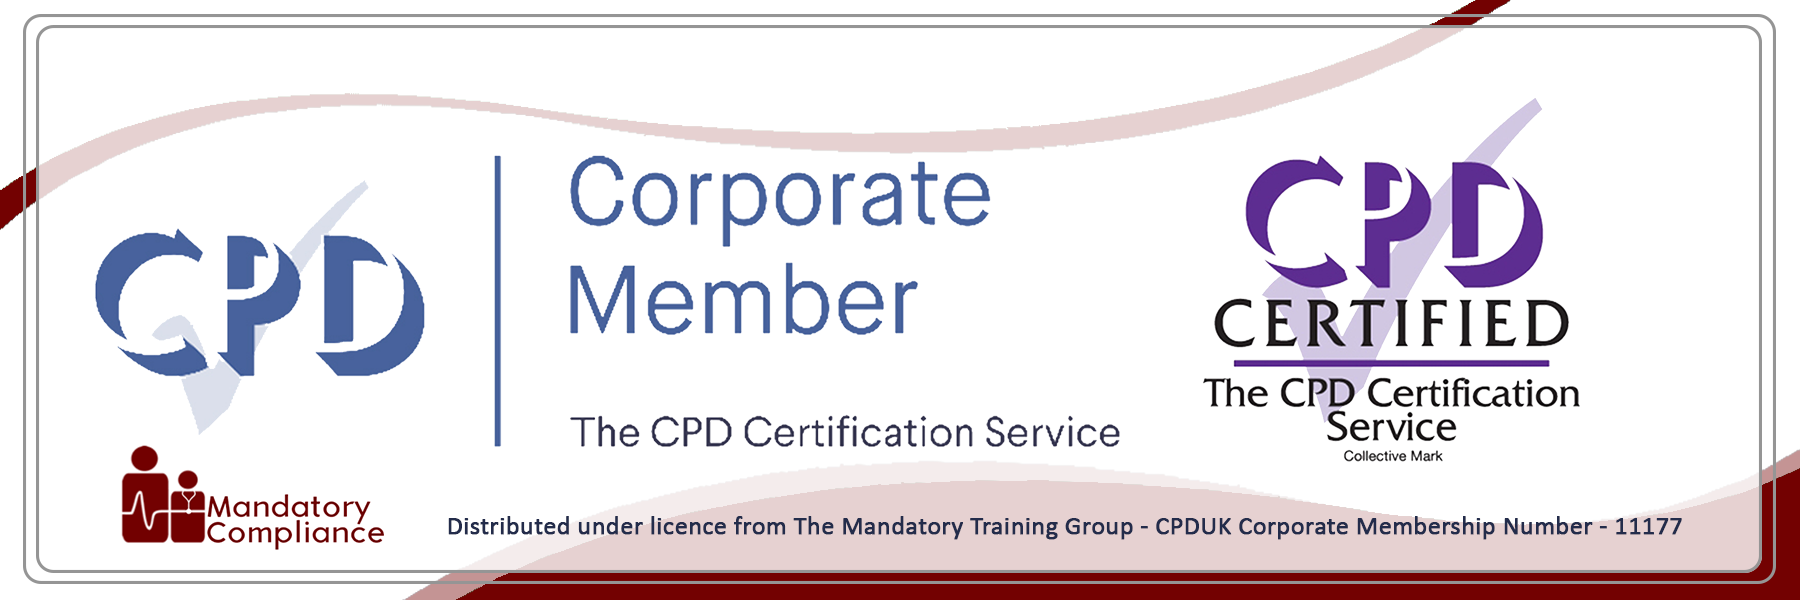 Prepare to Deliver Excellent Customer Service - Online-Training-Course-CPD-Accredited-Mandatory-Compliance-UK-